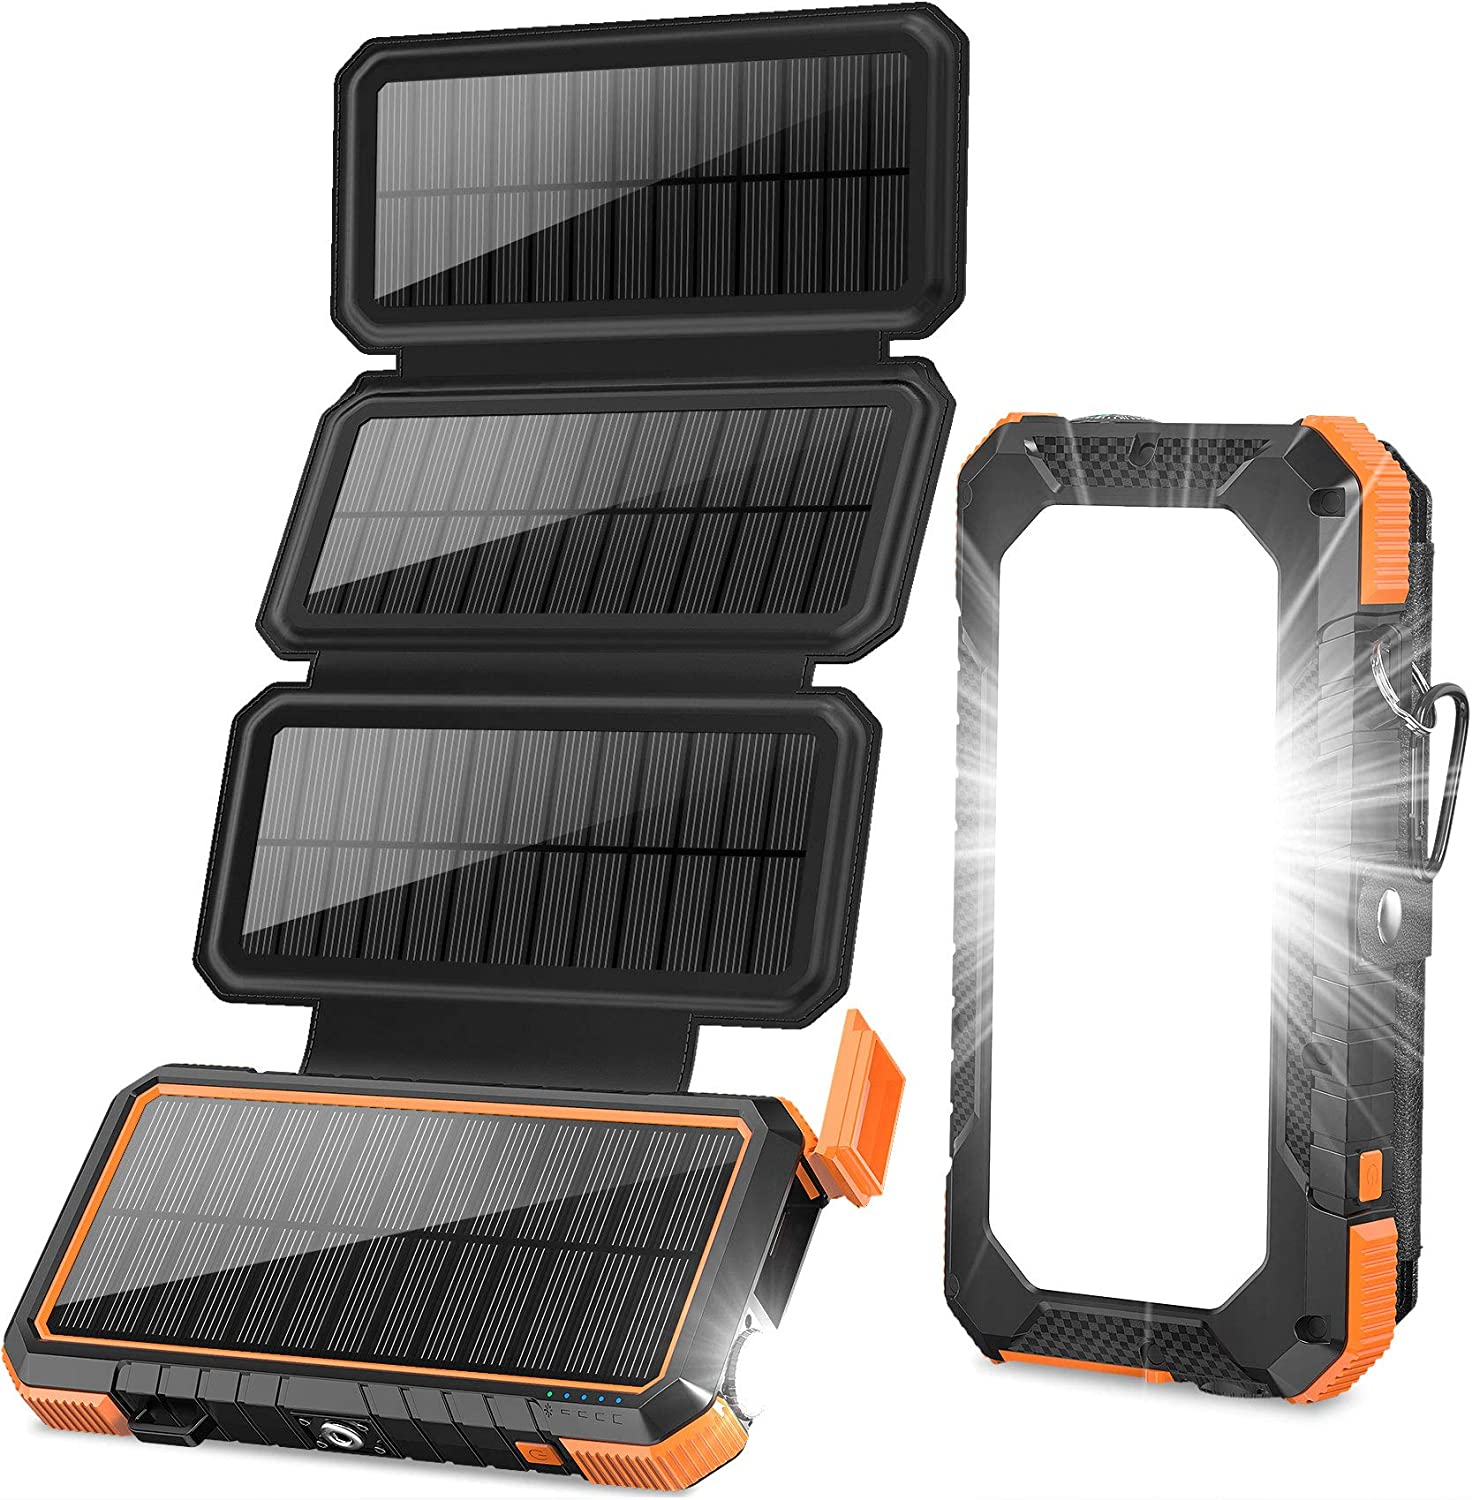 Outdoor Power Bank 18W Fast Charging 20,000mAh Solar Powered Charger with Camping Light//Flashlight//Compass Type C USB Charger 3 Outputs//Dual Inputs Orange BLAVOR Solar Charger with Foldable Panels